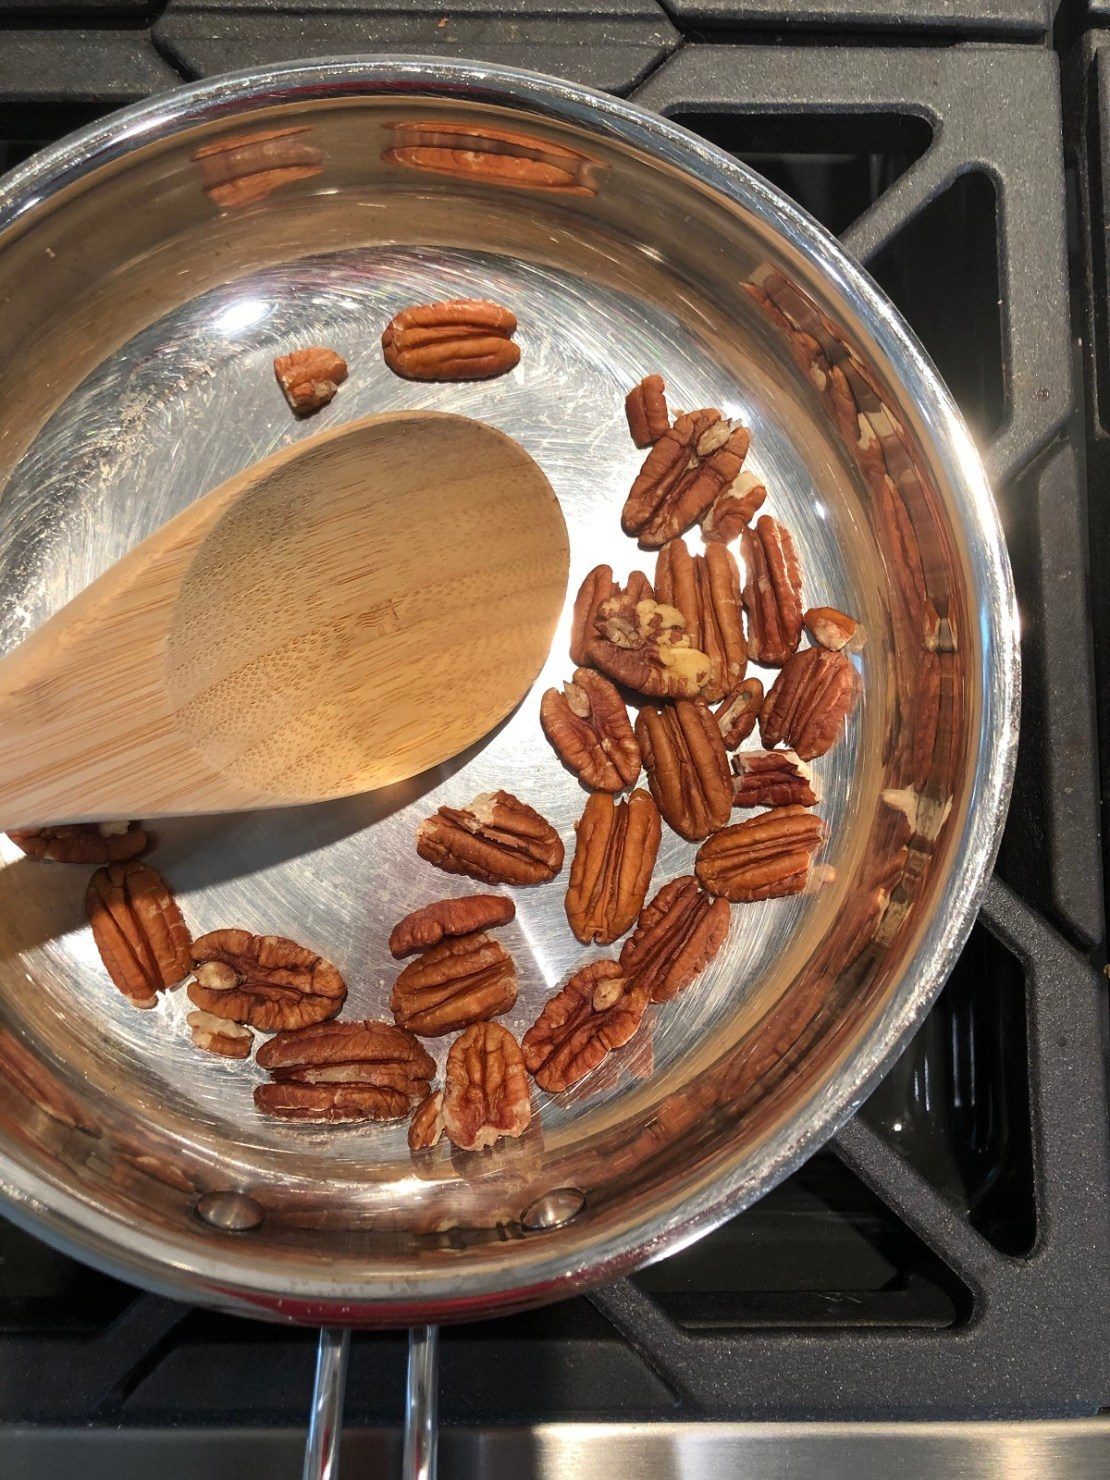 roasted pecans in stainless steel pan on stove with wooden spoon